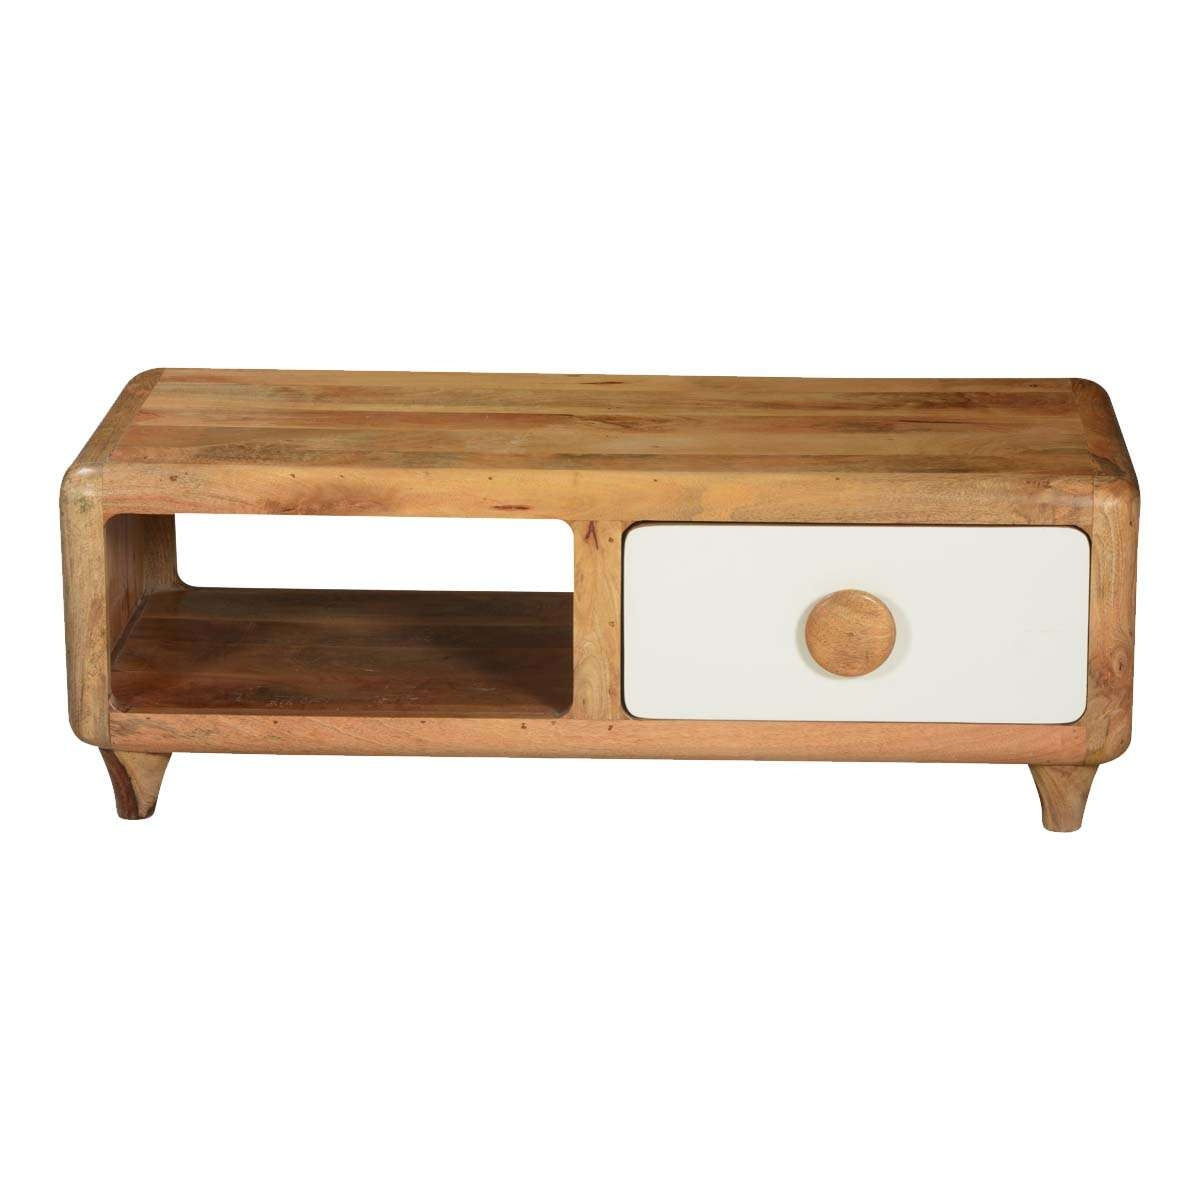 Preferred Coffee Table Rounded Corners In Natural Mango Wood Tv Console A Cabinet